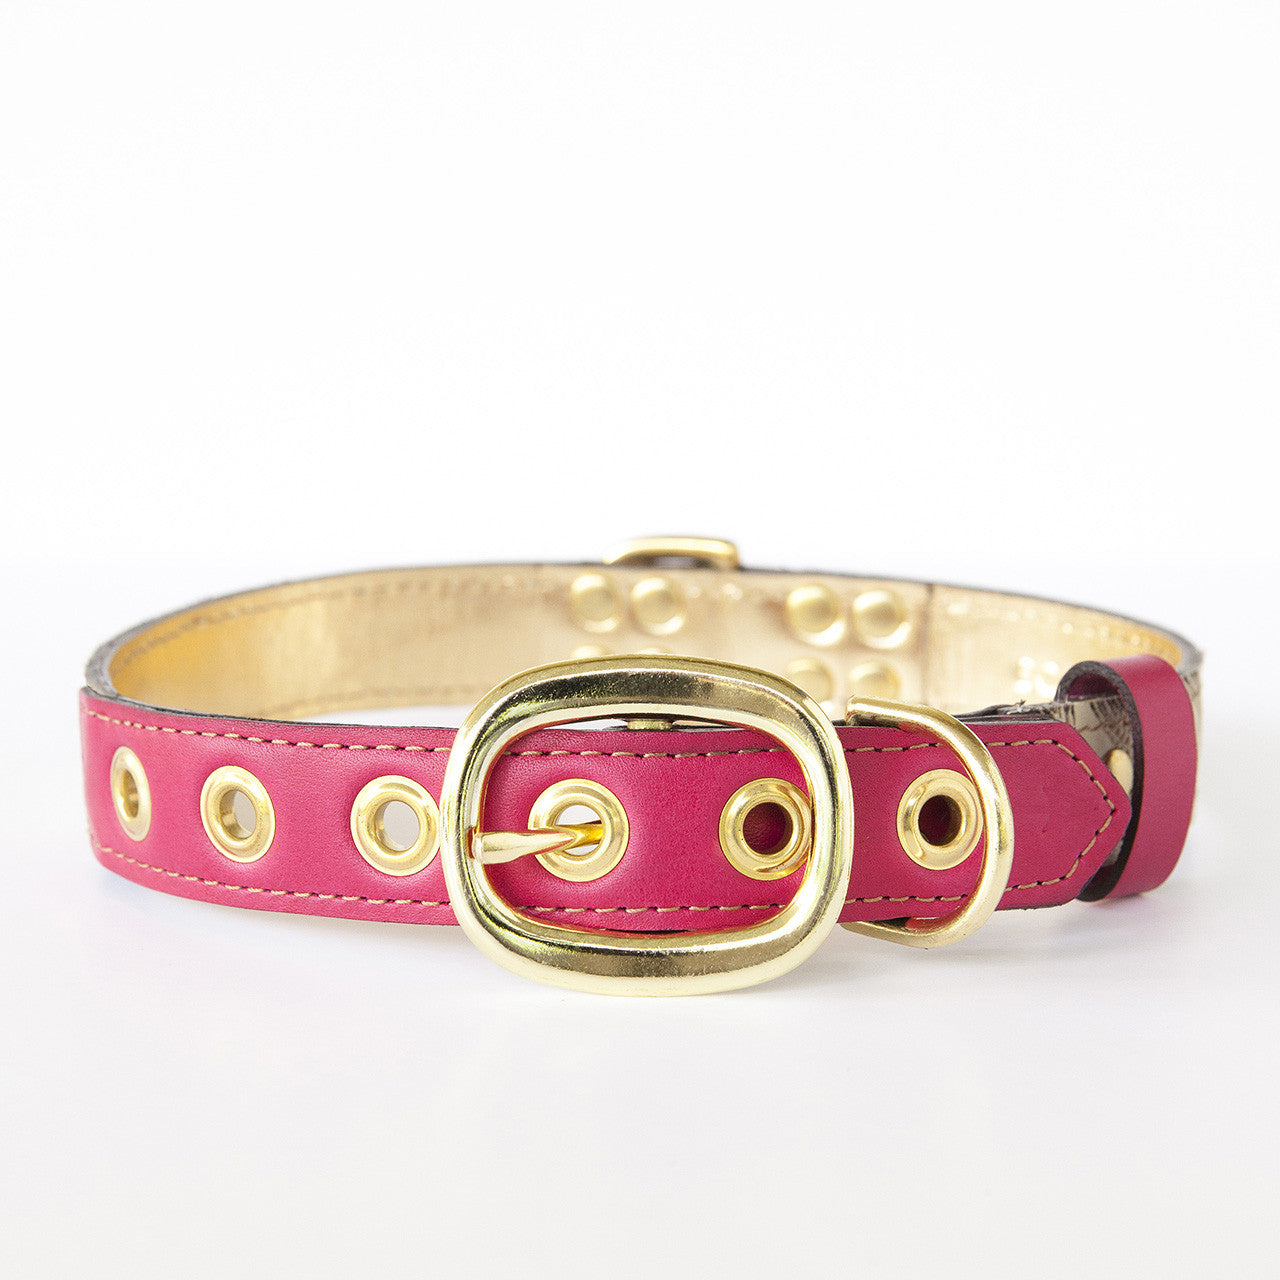 Hot Pink Dog Collar with Ivory Leather + Brown Stitching (back view)